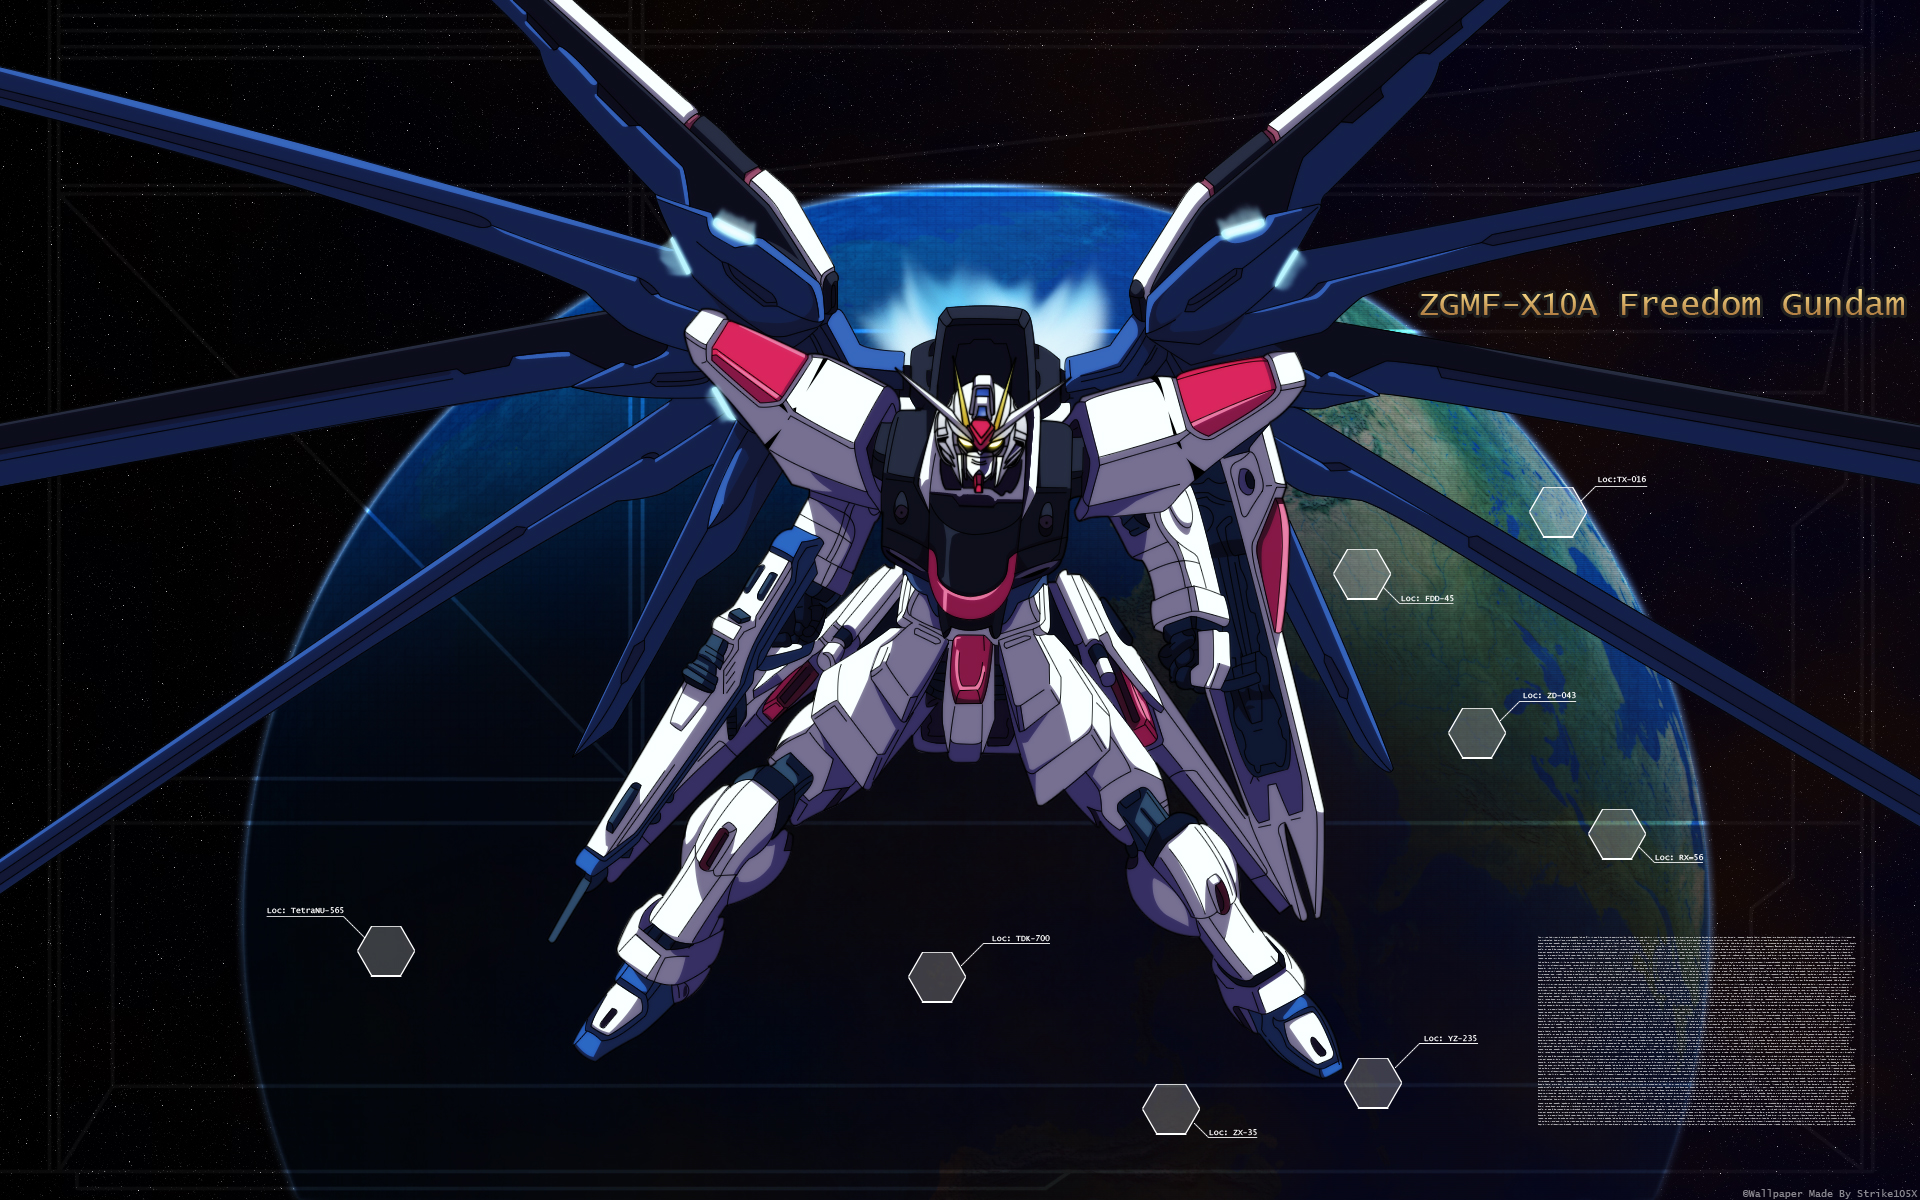 Mobile Suit Gundam Seed Wallpaper And Scan Gallery Minitokyo